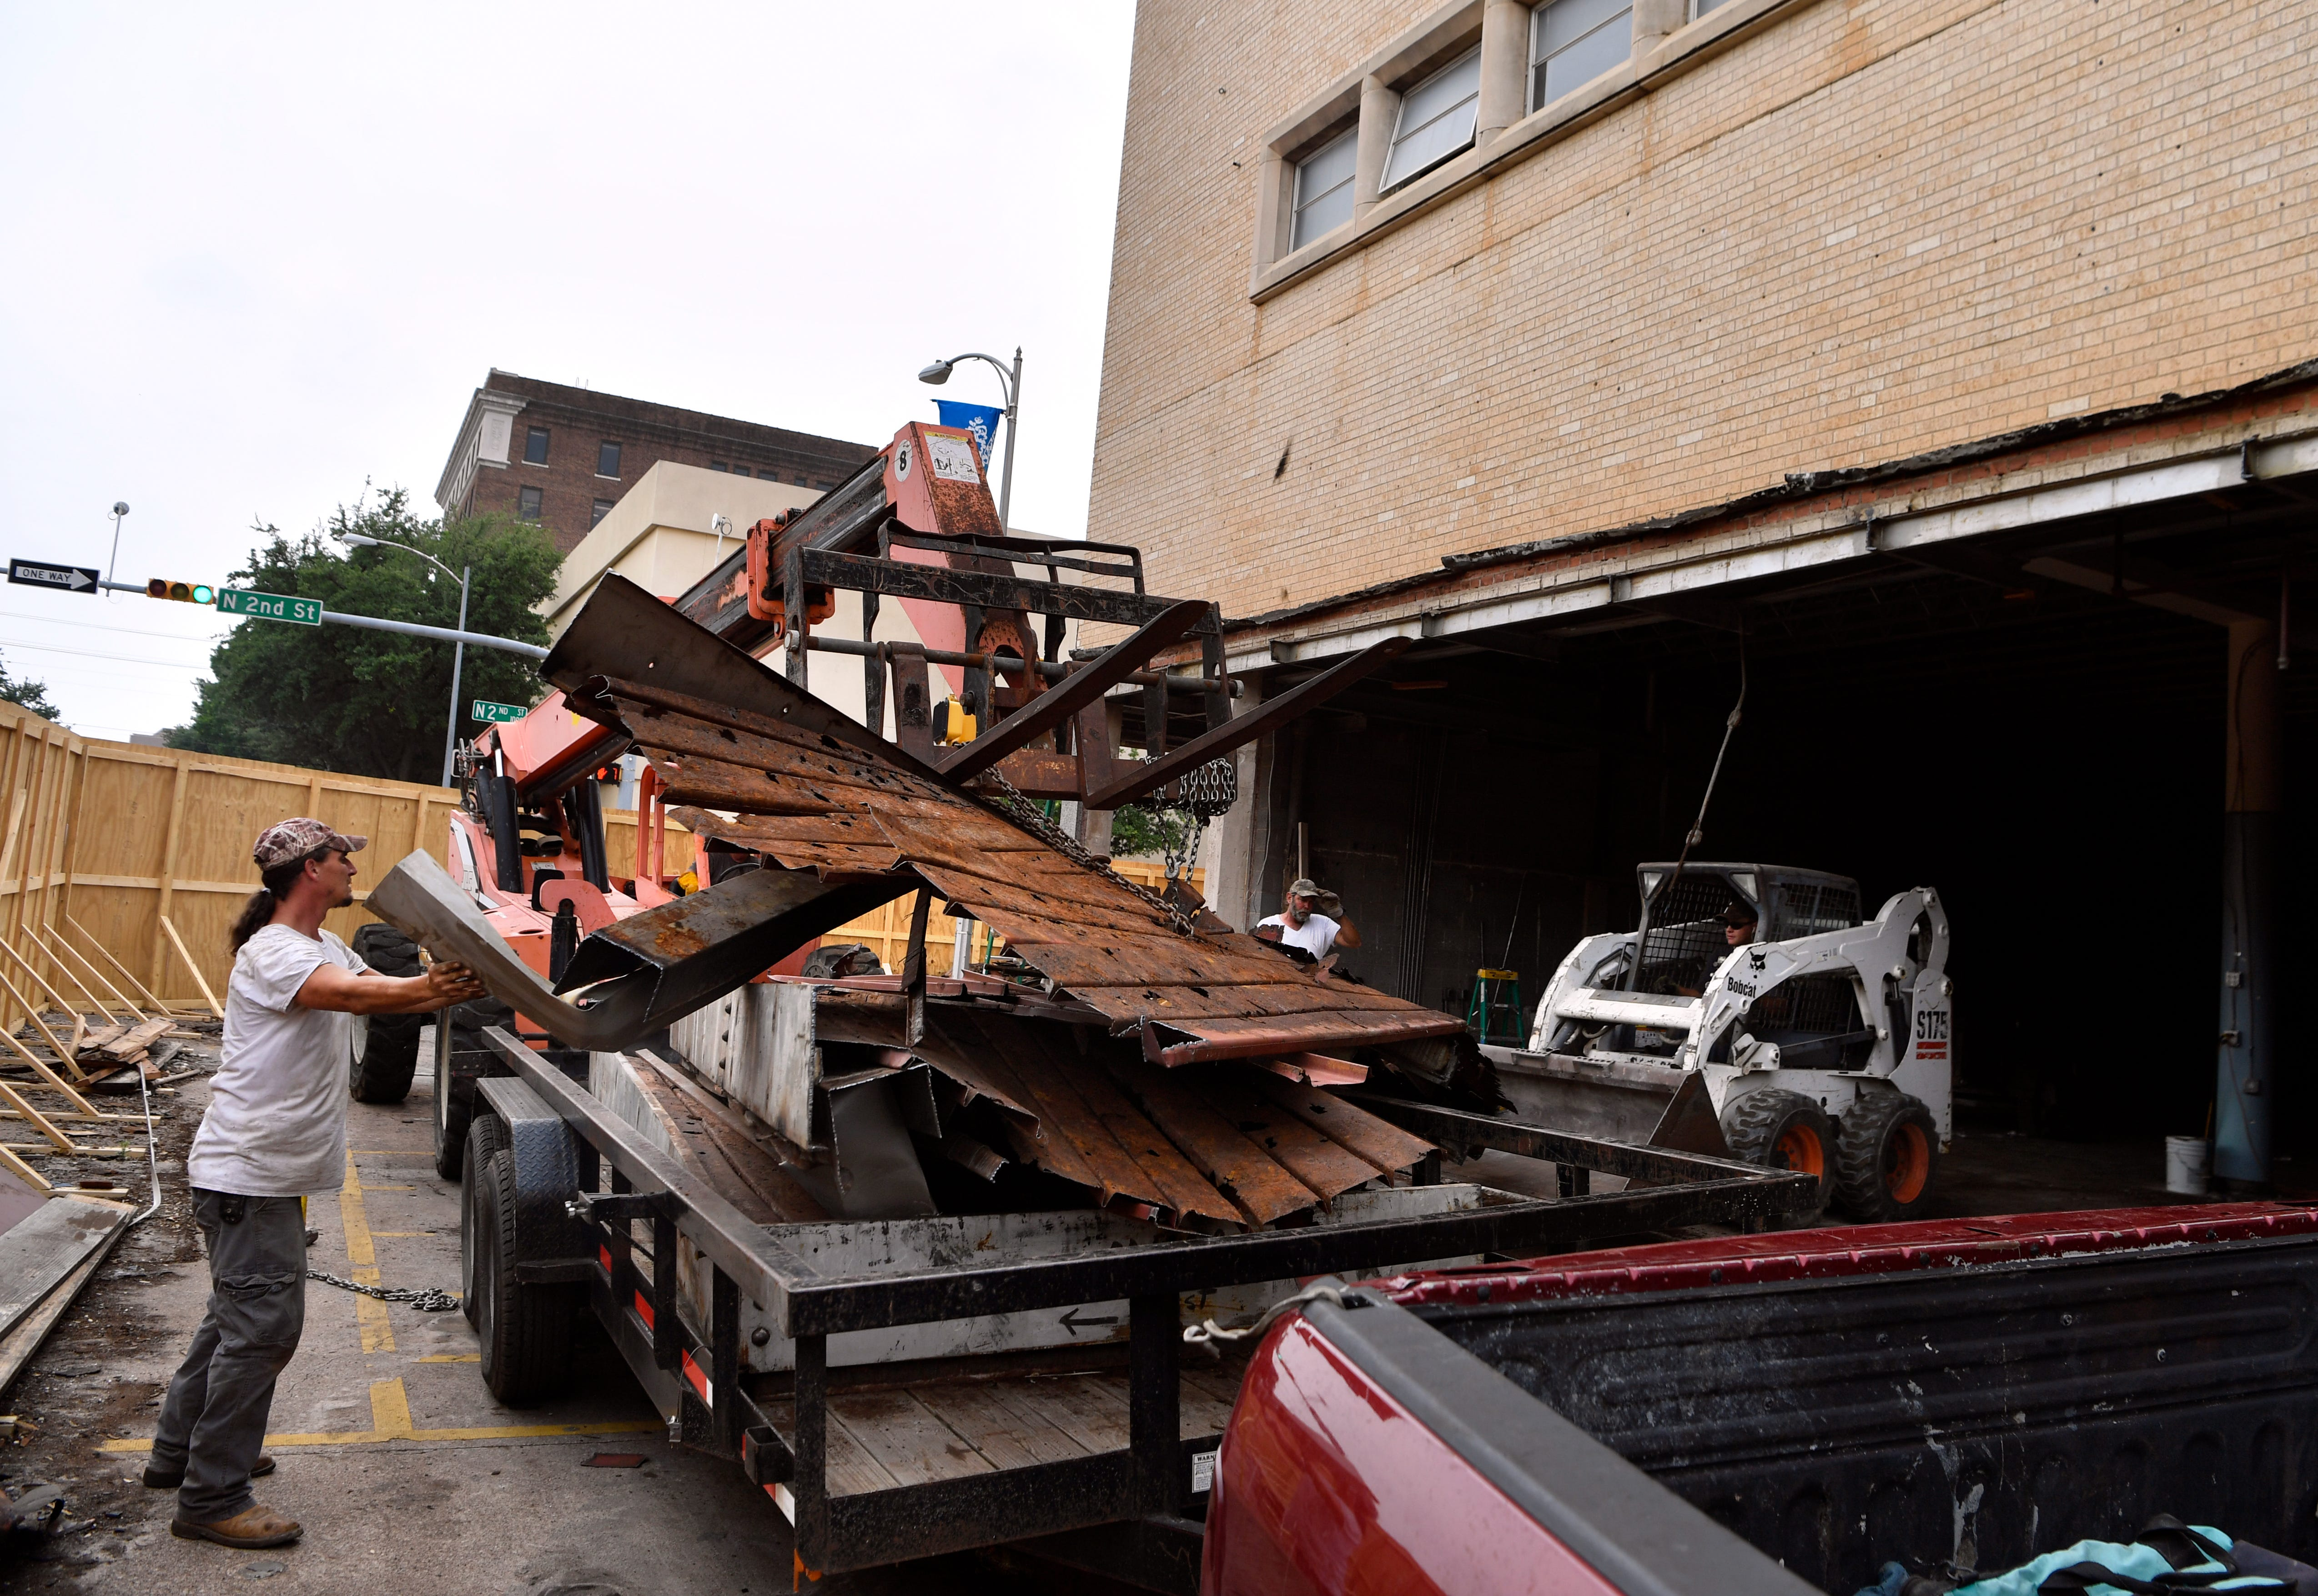 Jonathan Peters steadies the remains of the steel awning as Adair Hanley lowers it onto a trailer April 30 at 202 Pine St. The renovated building will be known as the Motis Building and will be home to several new downtown businesses.